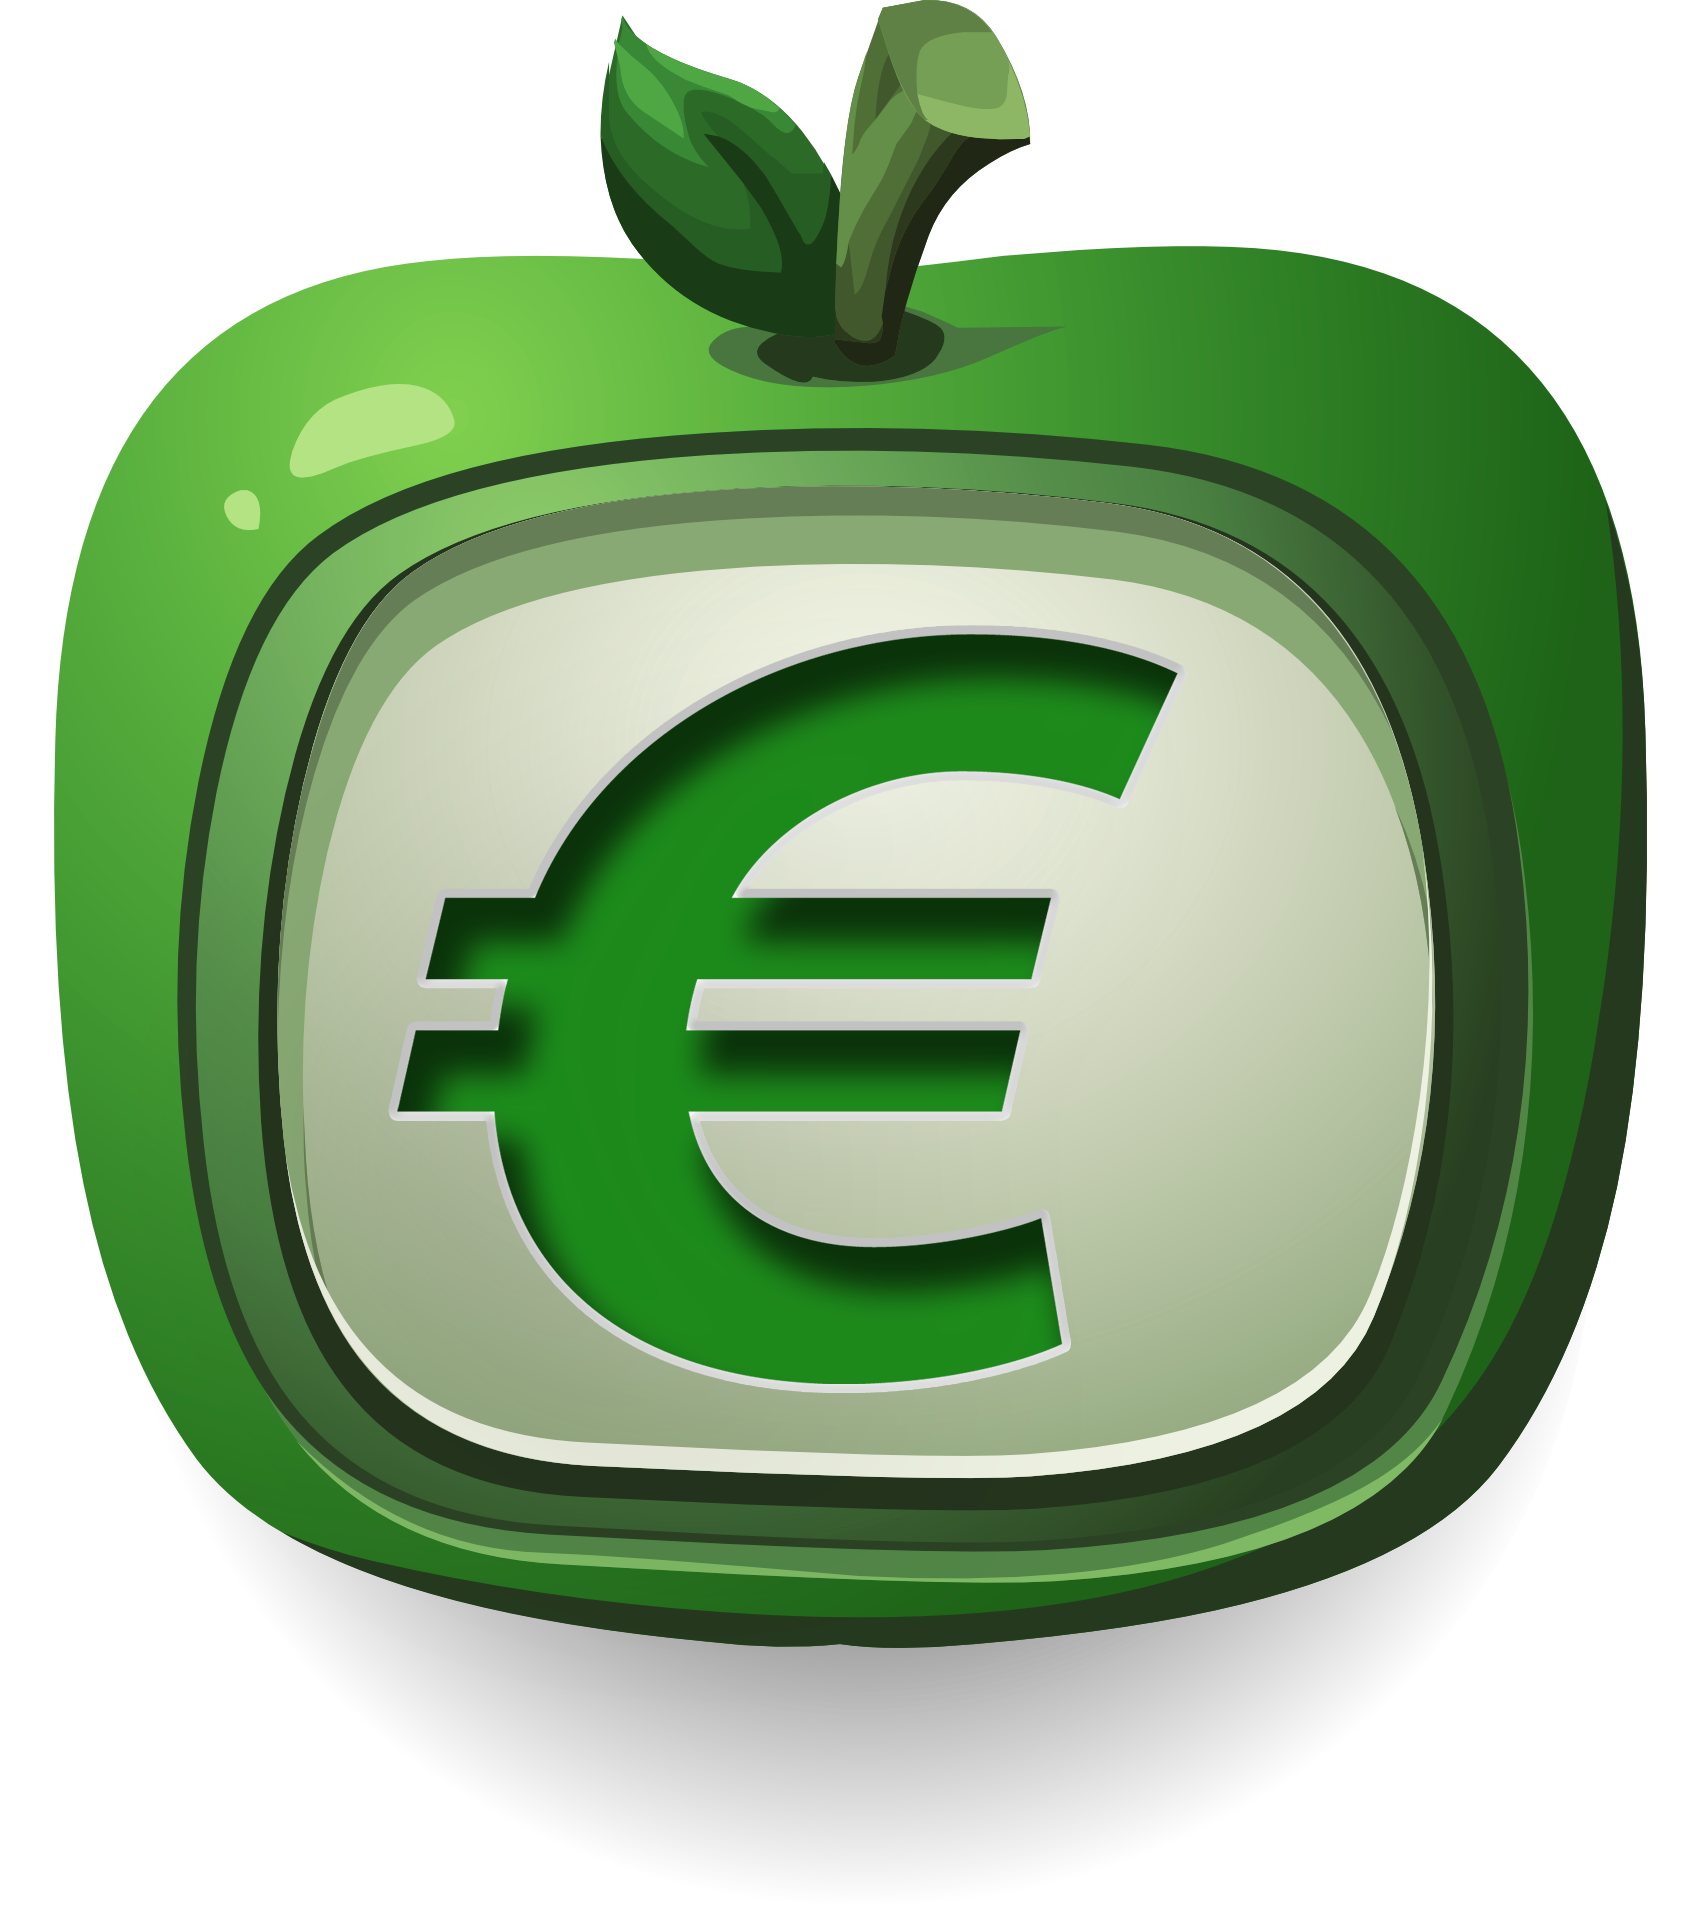 Money green arrow clipart royalty free library Euro PNG Transparent Image - PngPix royalty free library